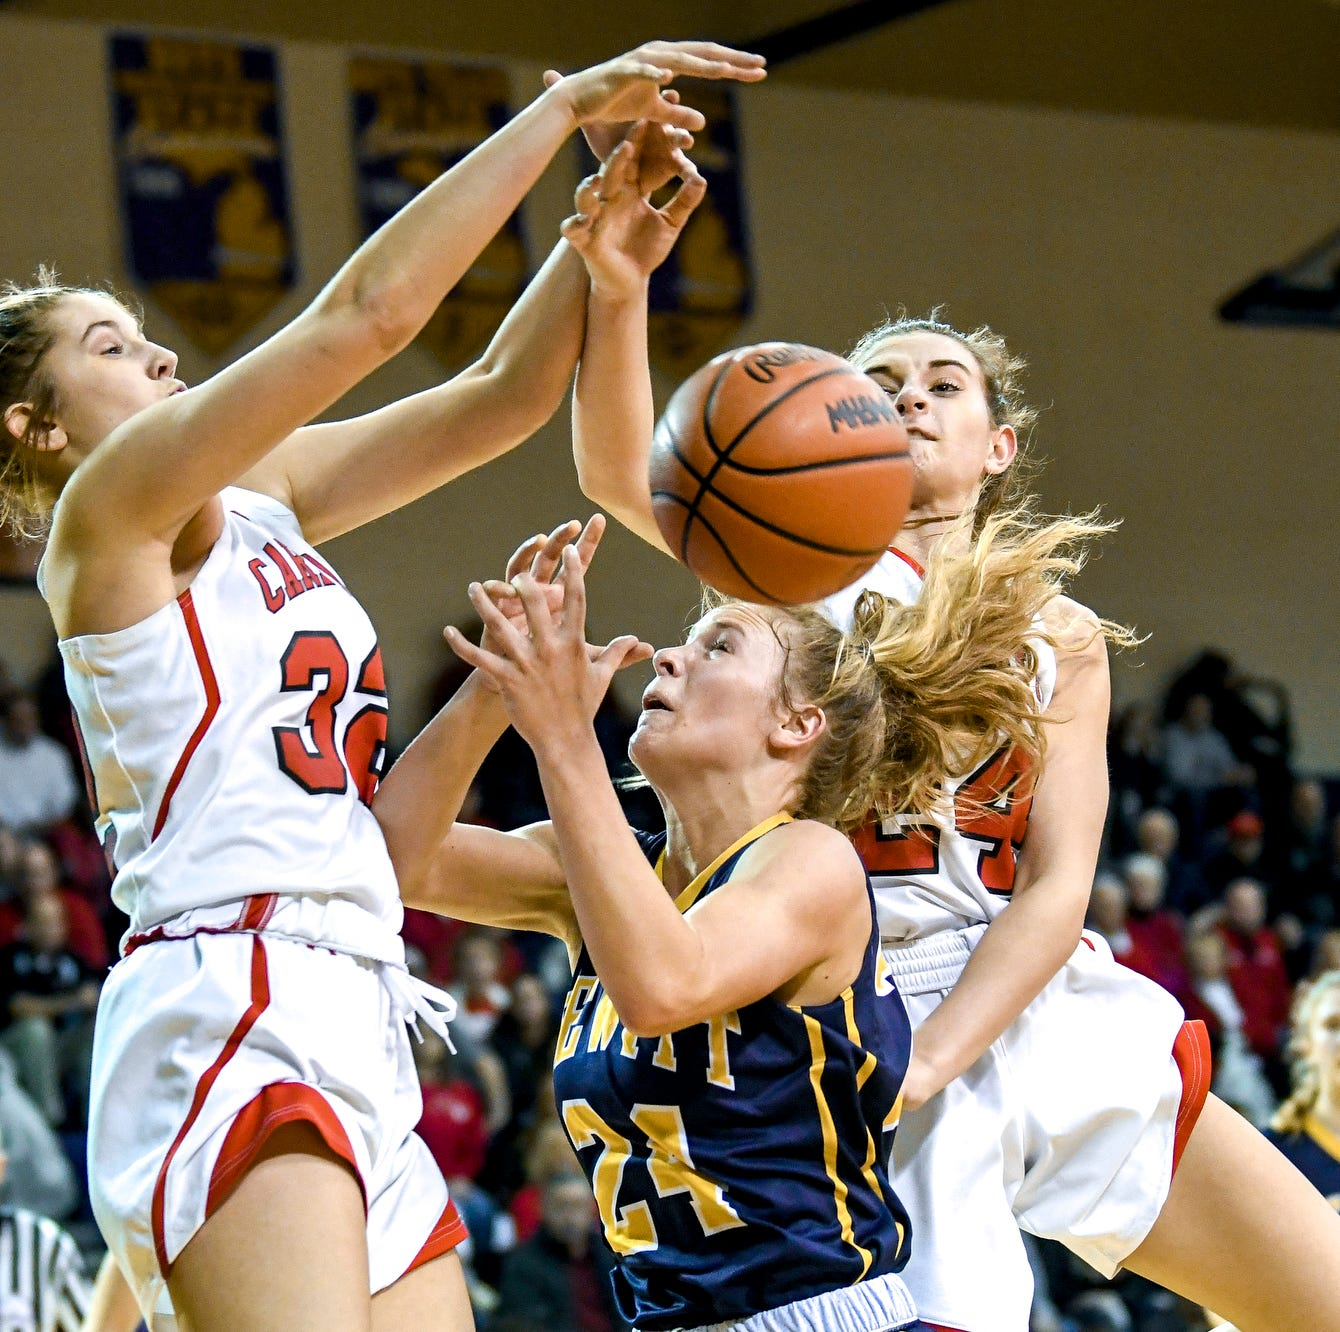 Coldwater girls basketball stopped in regional final by No. 5-ranked DeWitt